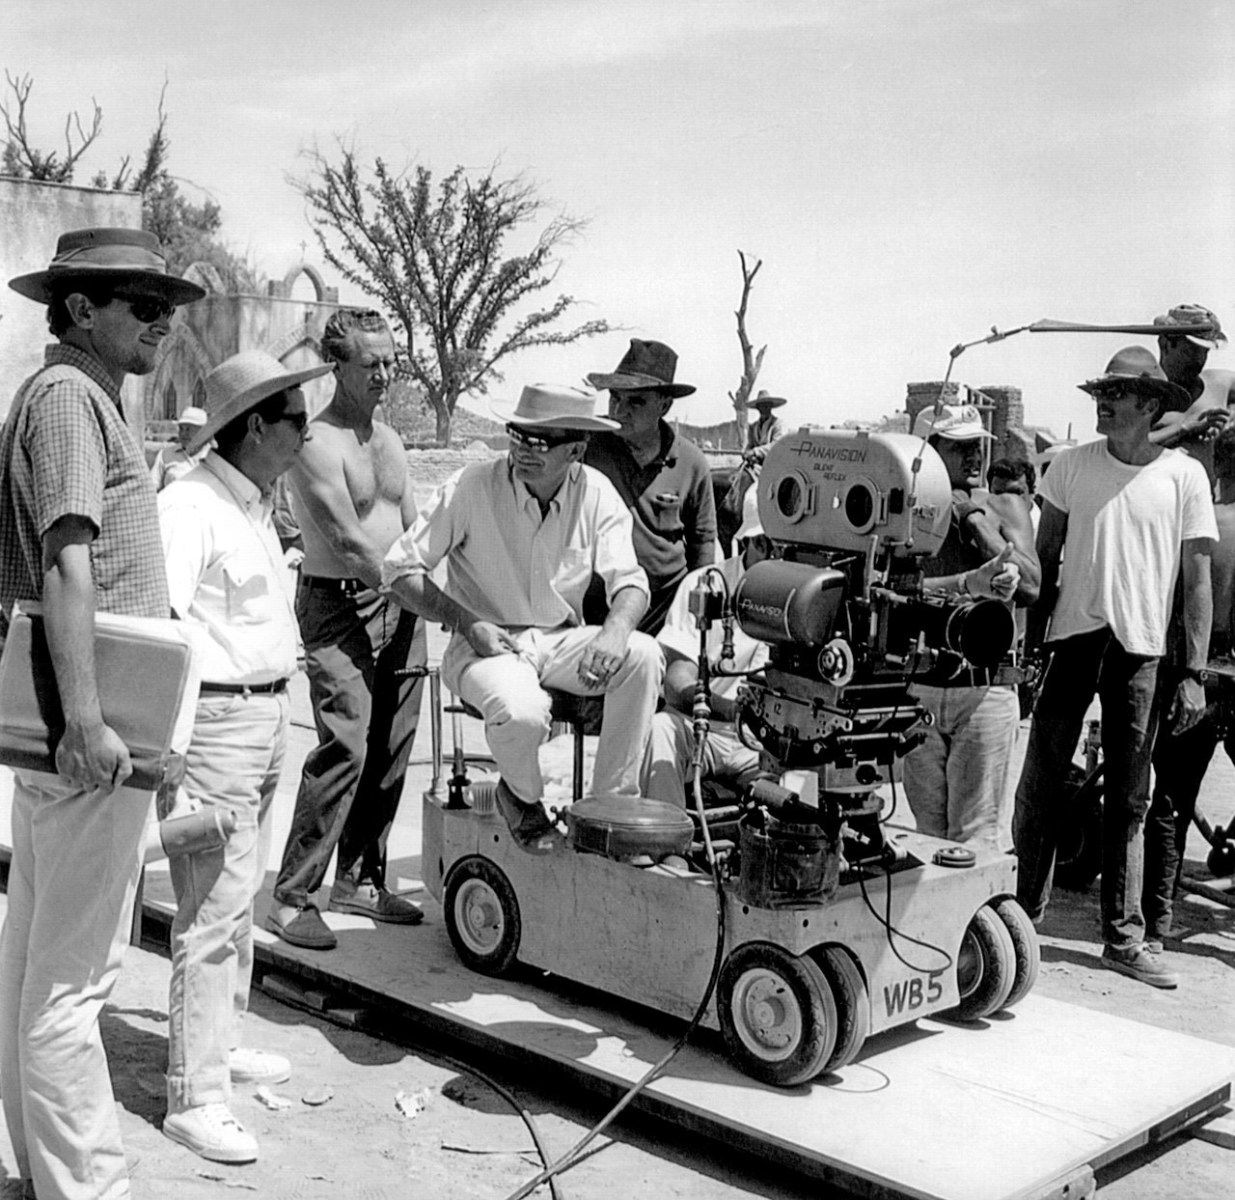 behind the scene at The Wild Bunch (1969)